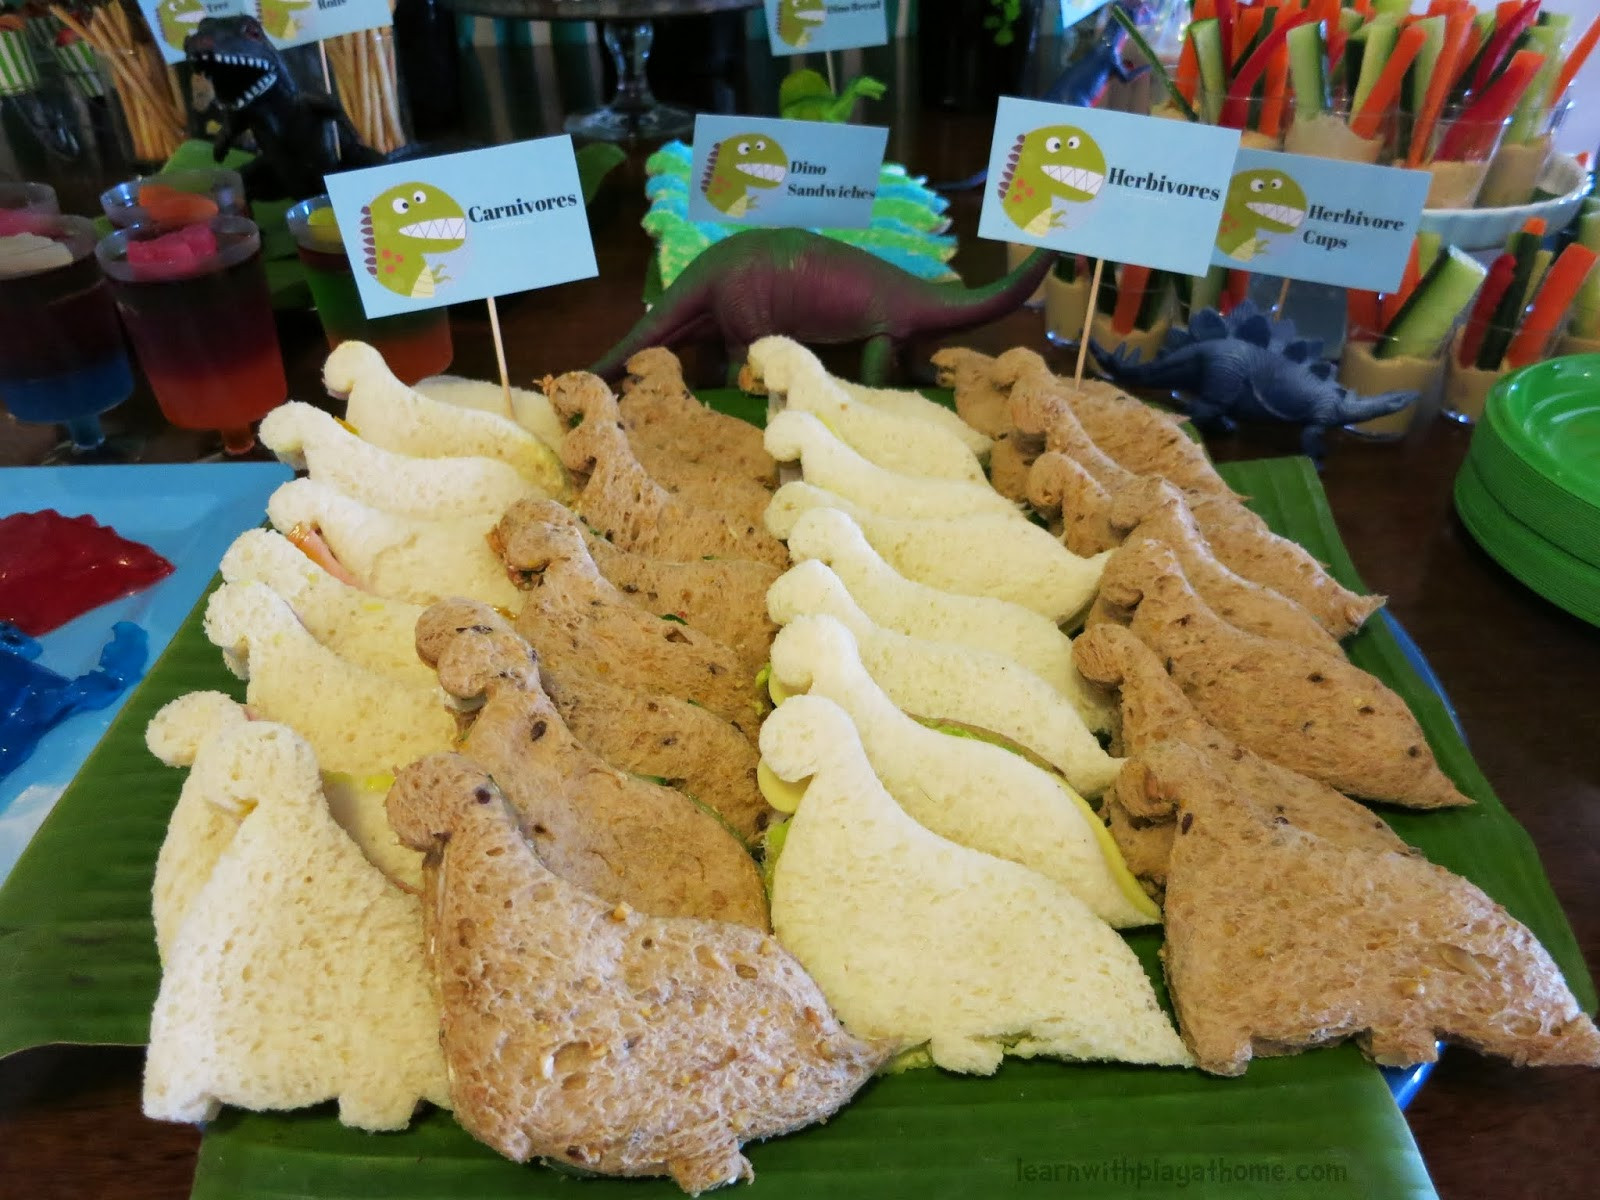 Dinosaur Party Food Ideas  Learn with Play at Home Dinosaur Party